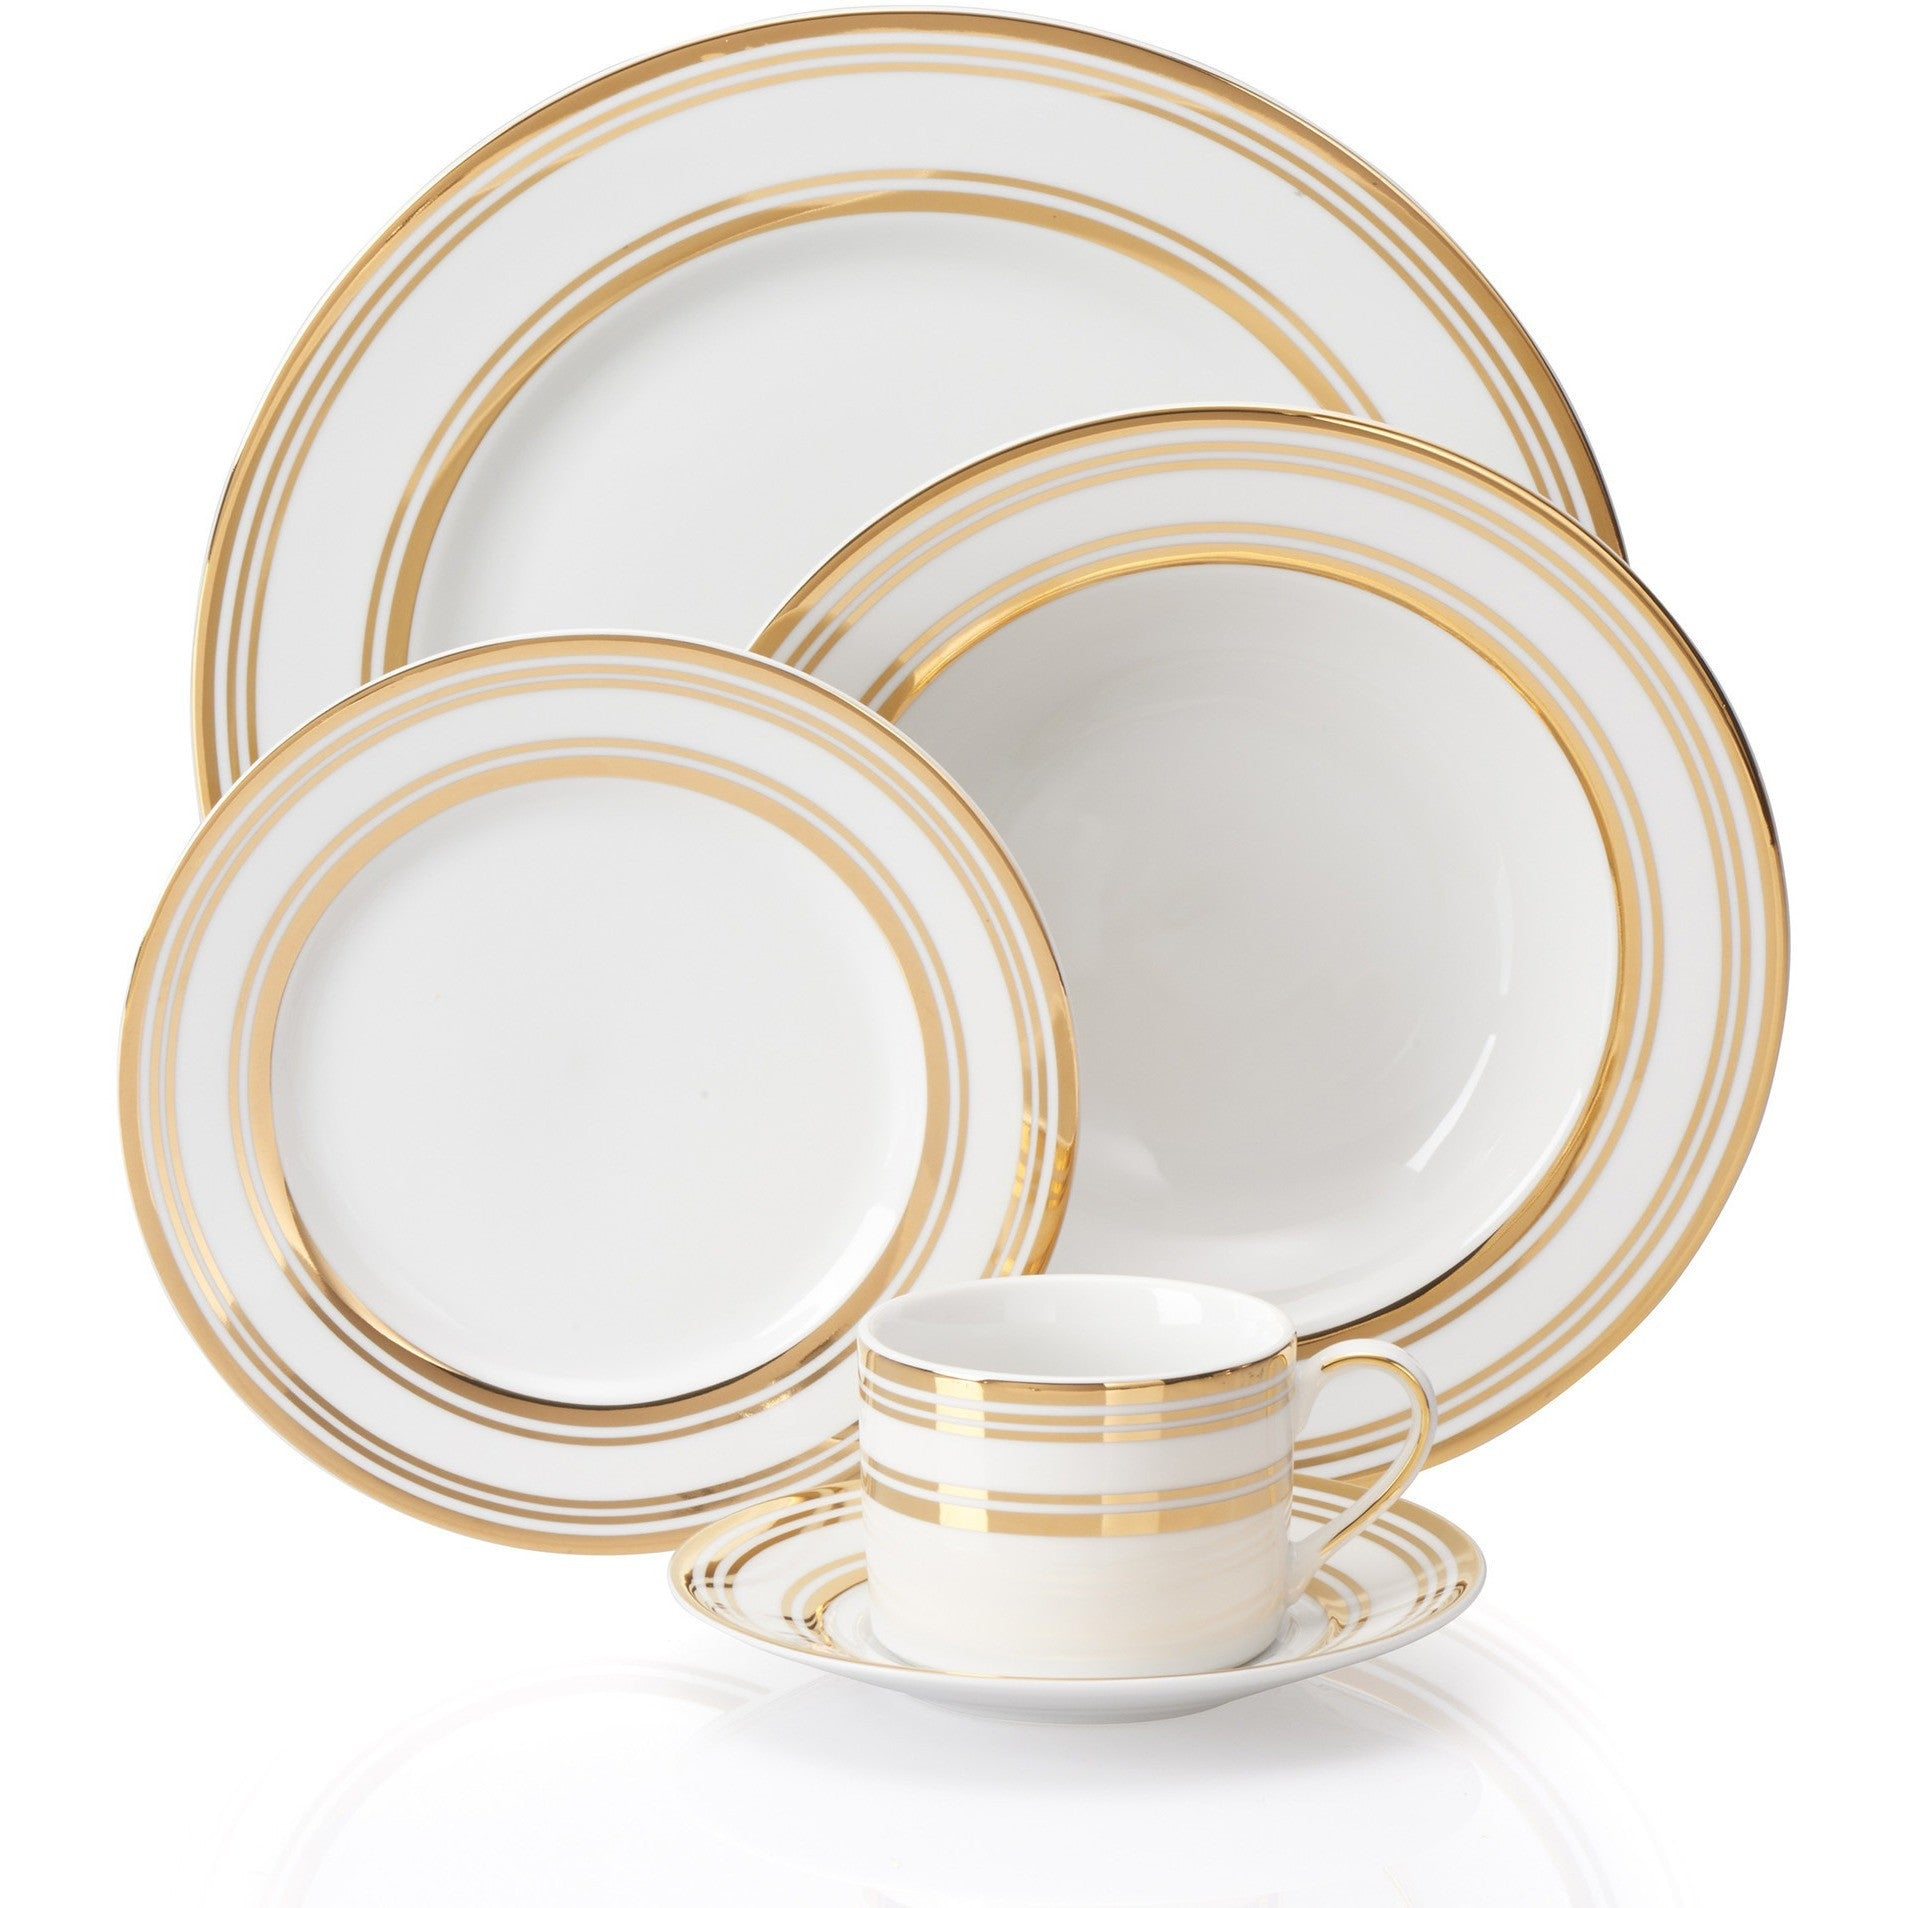 Gold Trim Dinnerware Set ...  sc 1 st  Britten Couture Home & Circa Gold Trim Dinnerware